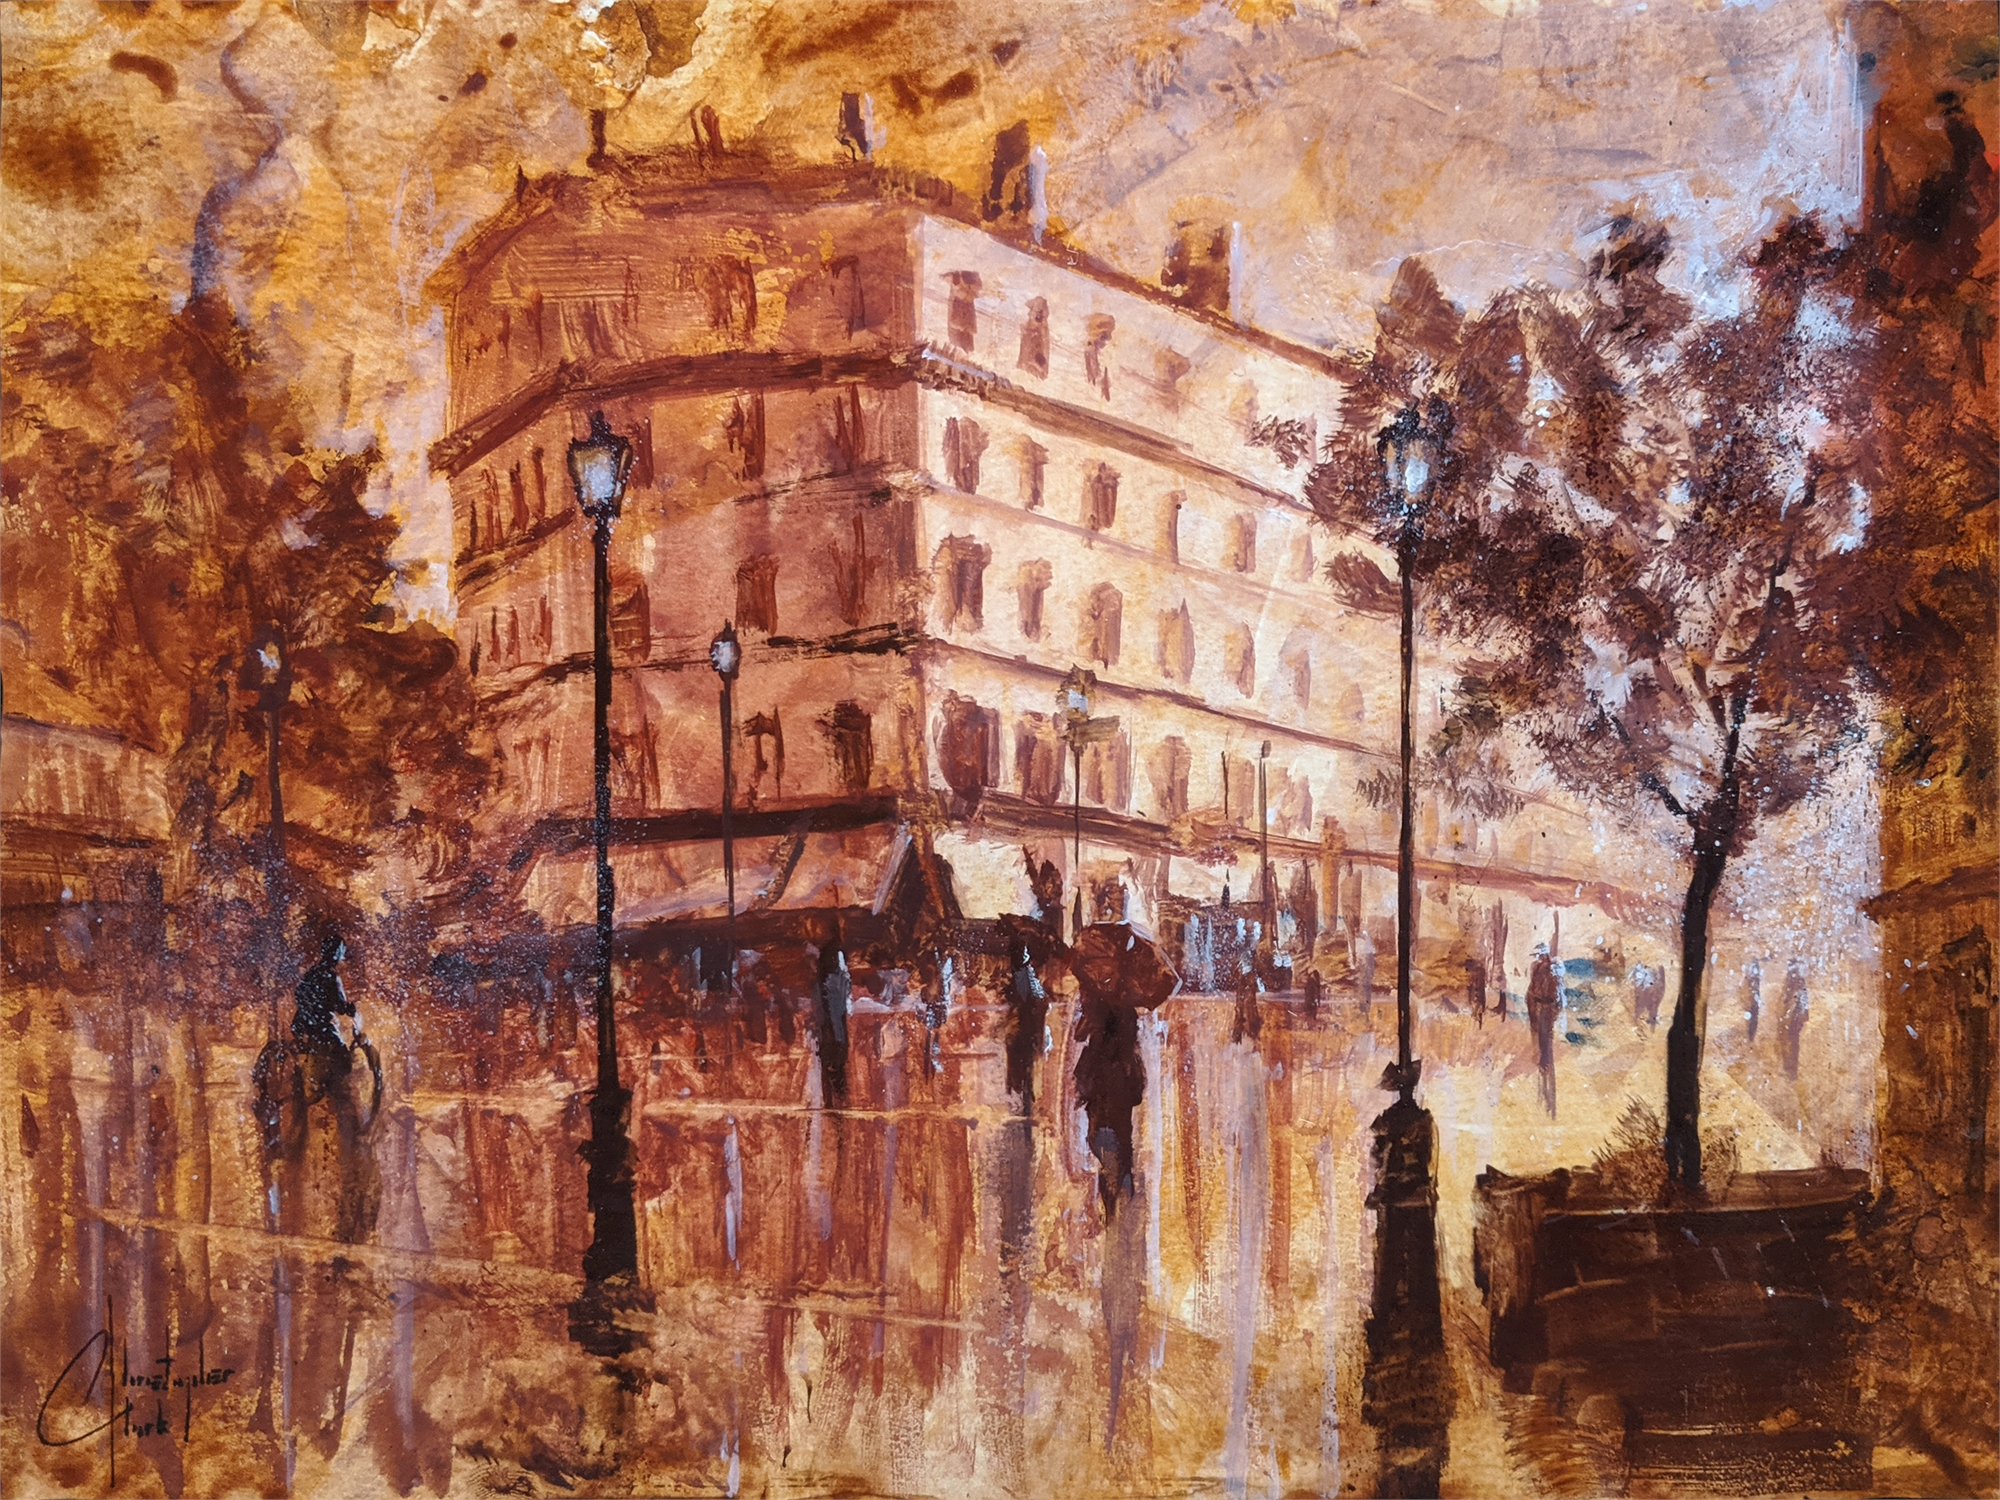 Sepia Tone, Paris IV by Christopher Clark